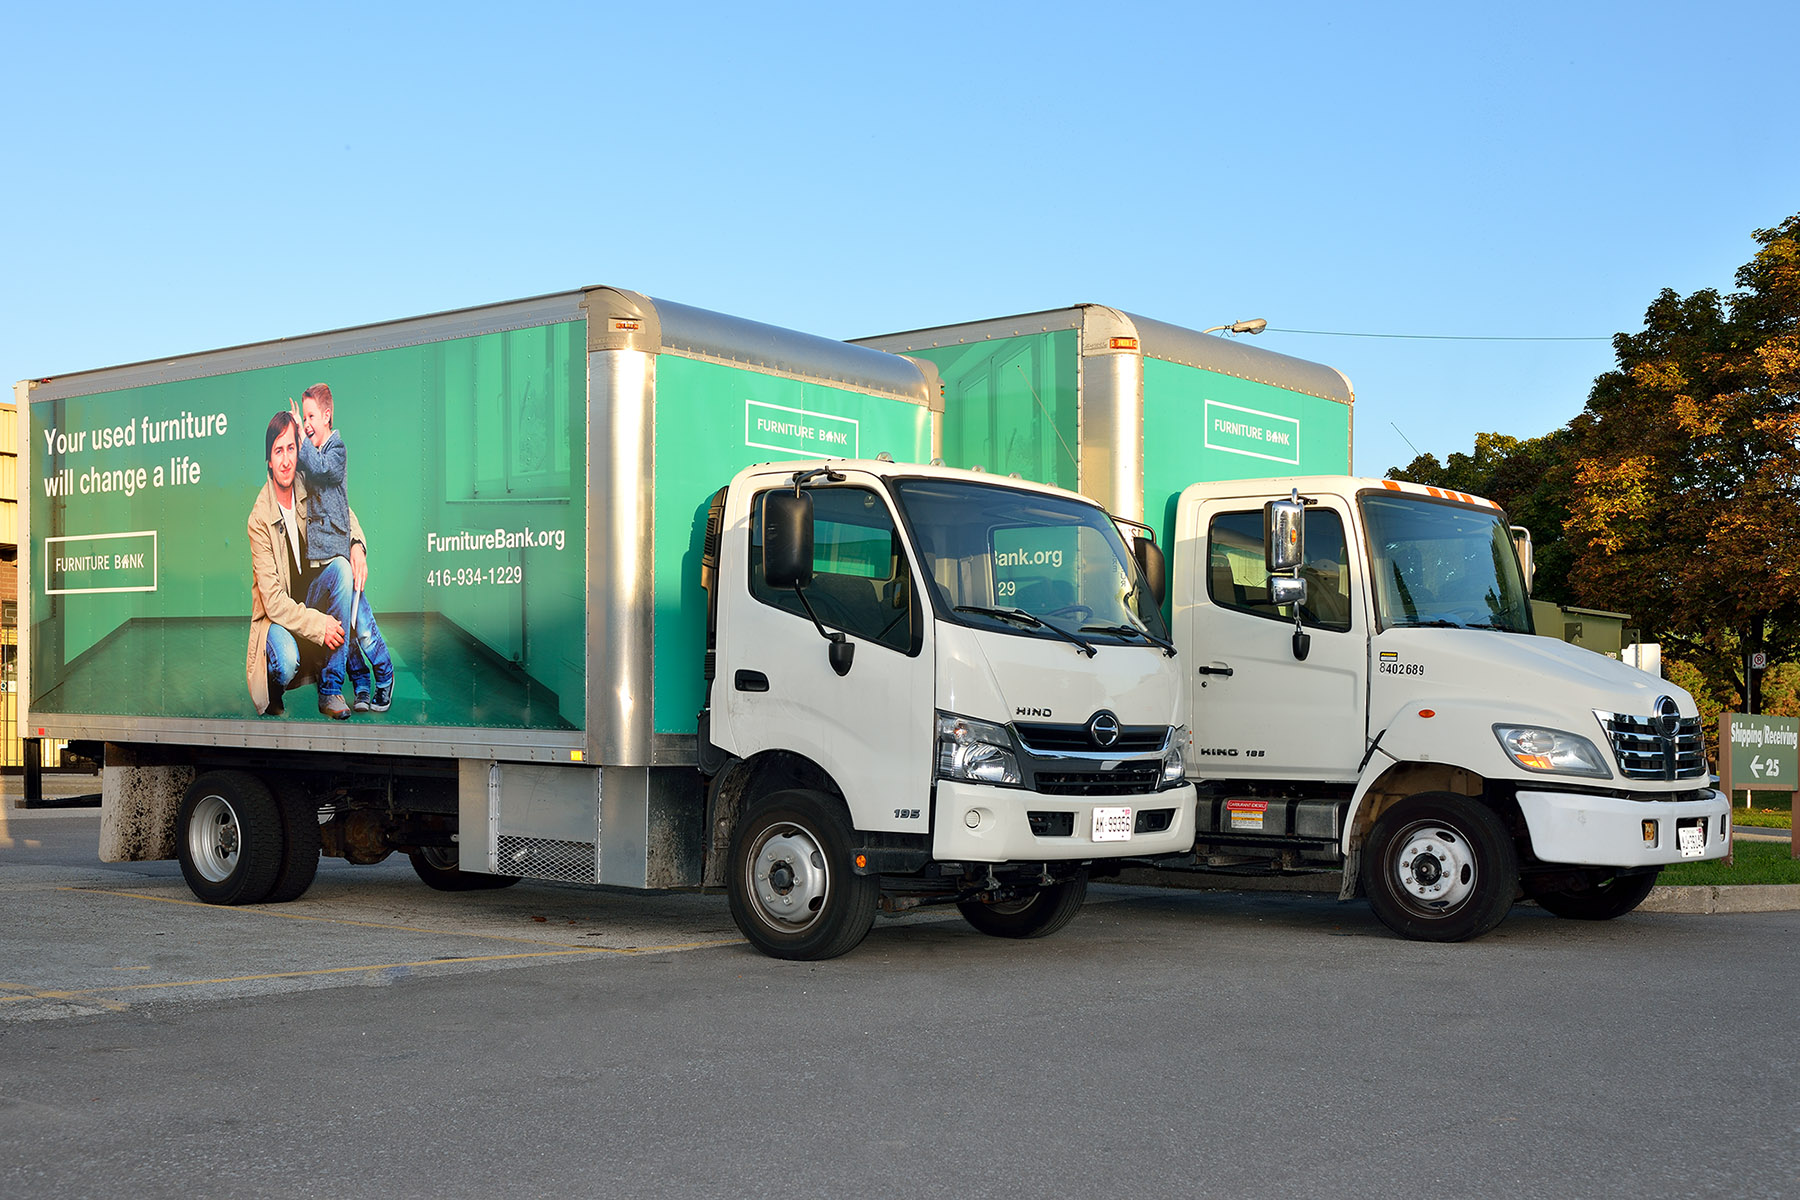 Furniture Bank Trucks Come To Your Place To Pick Up Your Used Furniture To  Give To